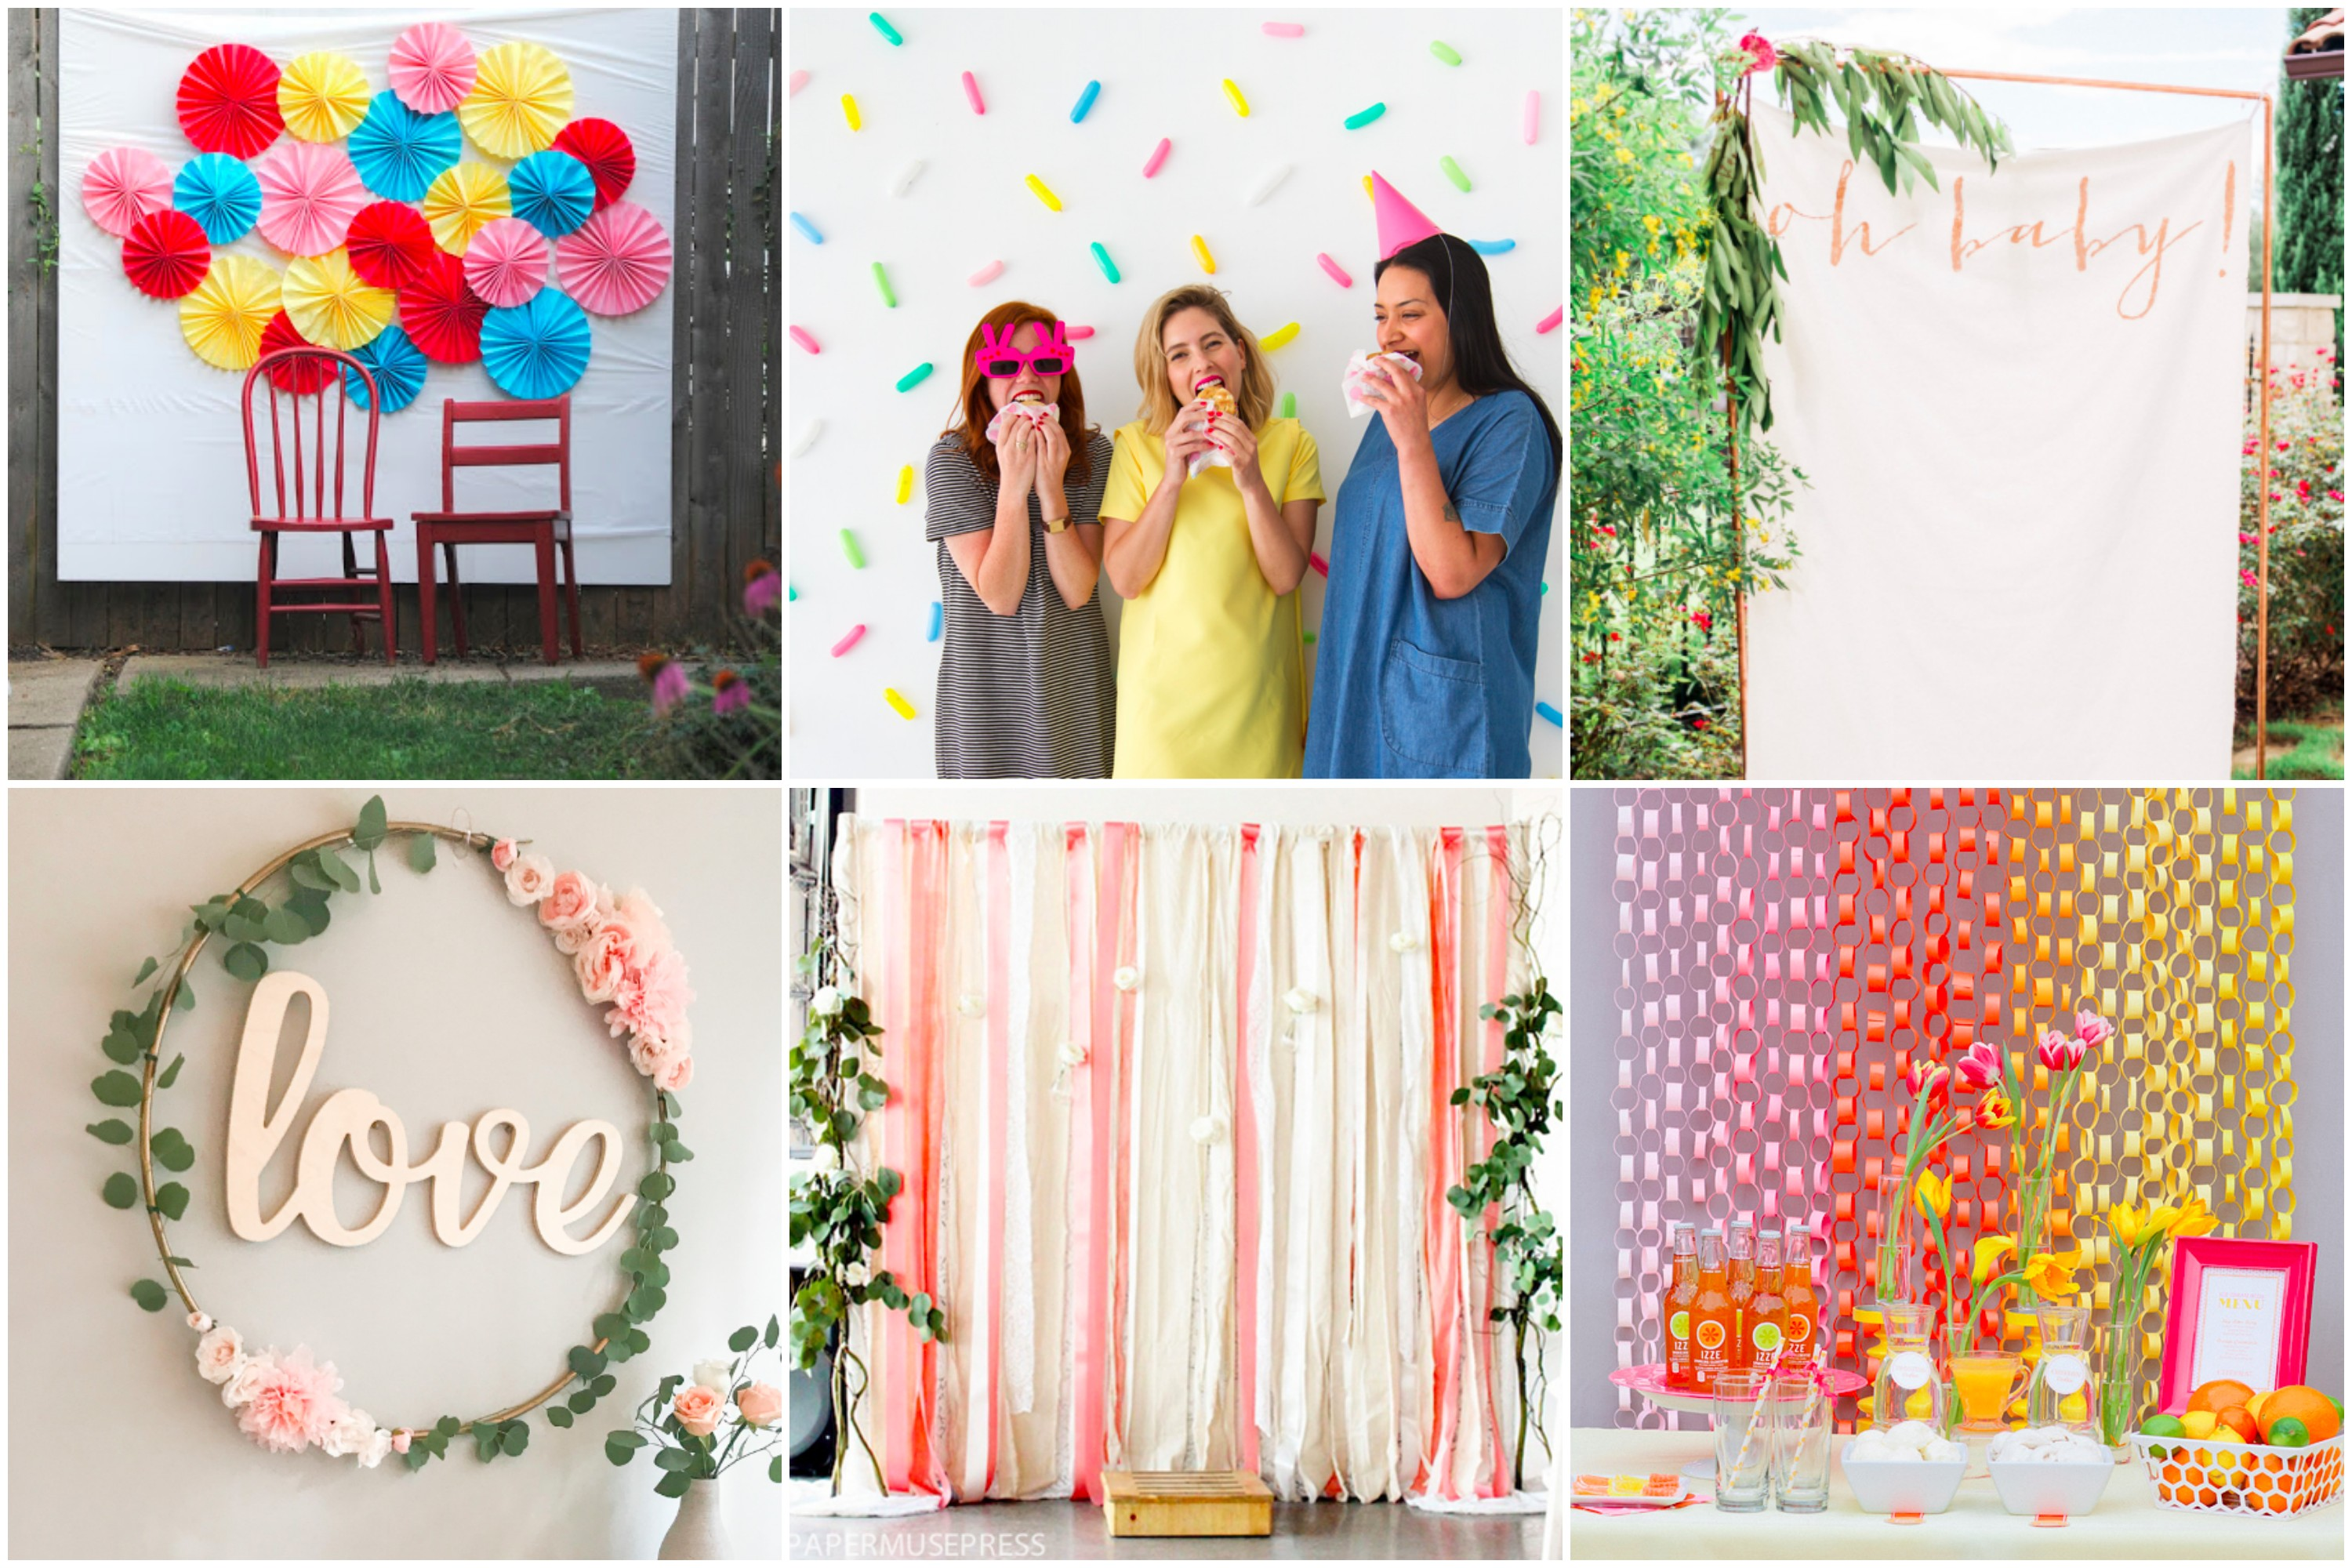 DIY Baby Shower Backdrop and Photo Booth ideas for a super creative and one of a kind party!